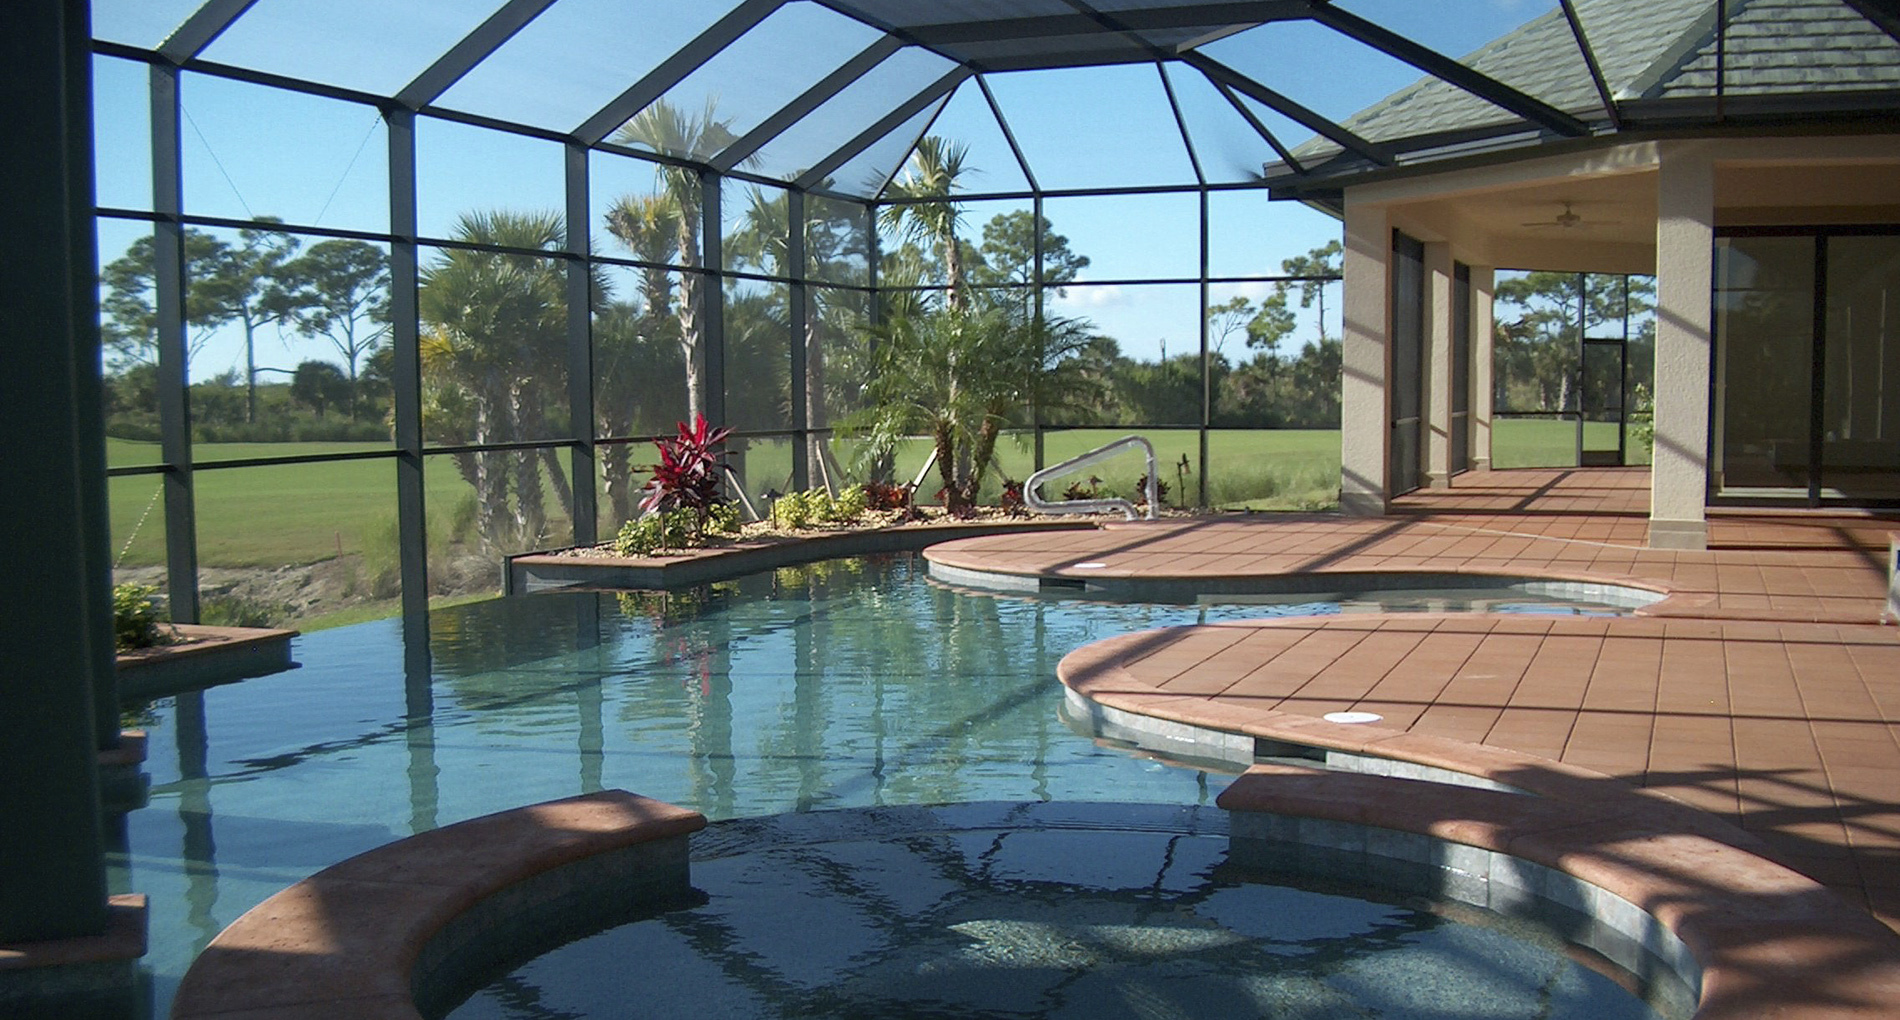 Large glass pool house addition for custom home in Bonita Springs